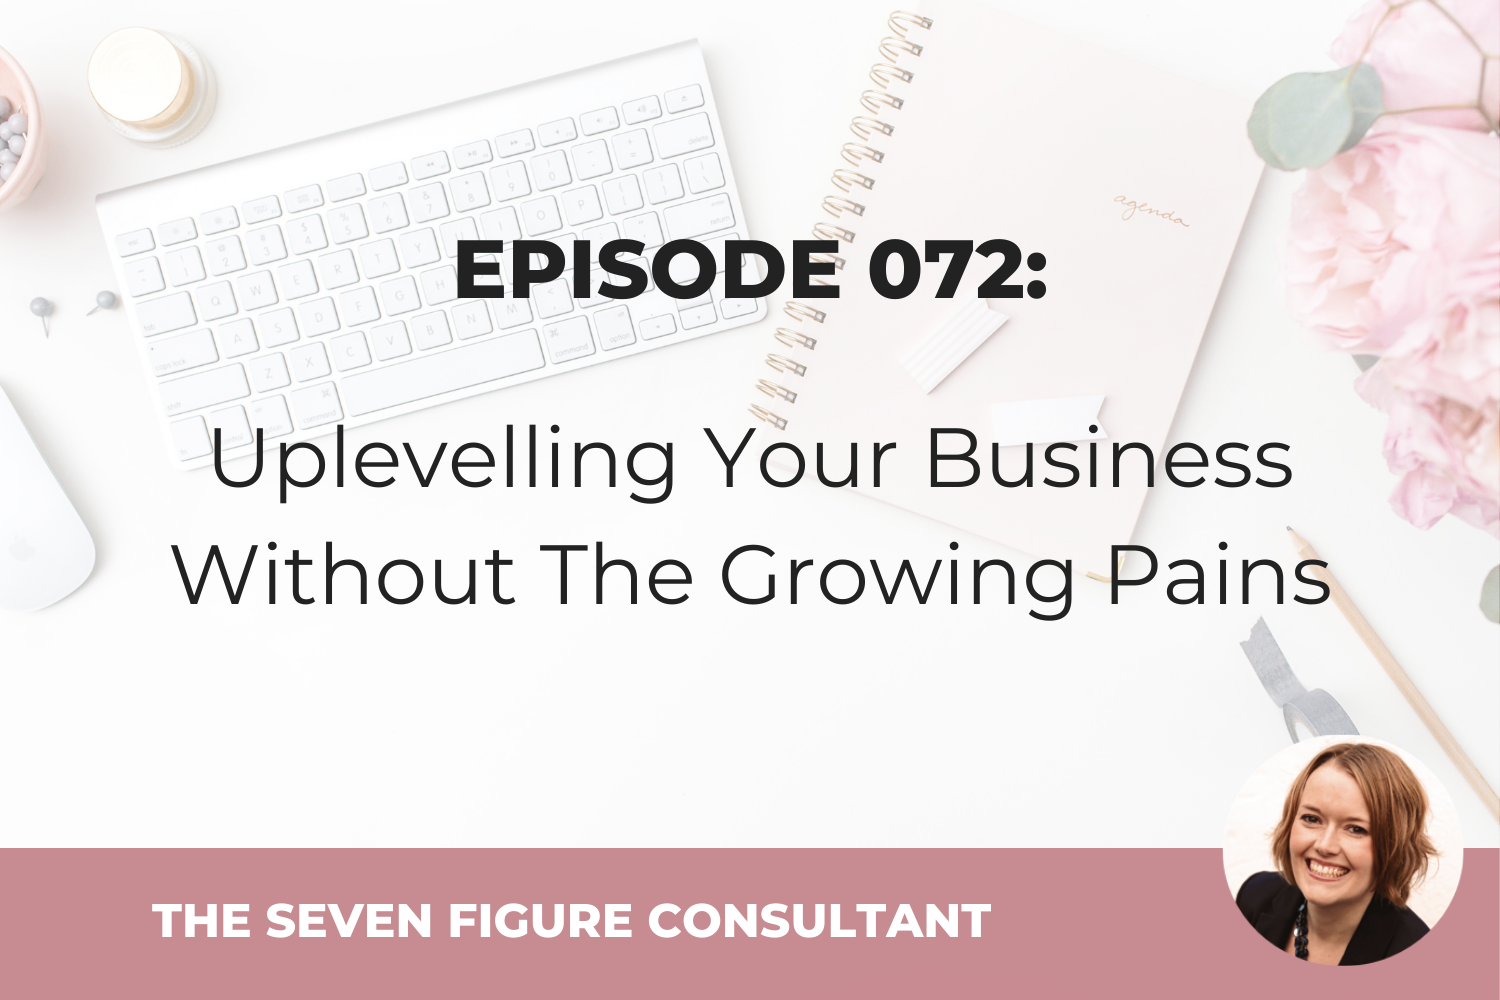 Episode 072: Uplevelling Your Business Without The Growing Pains